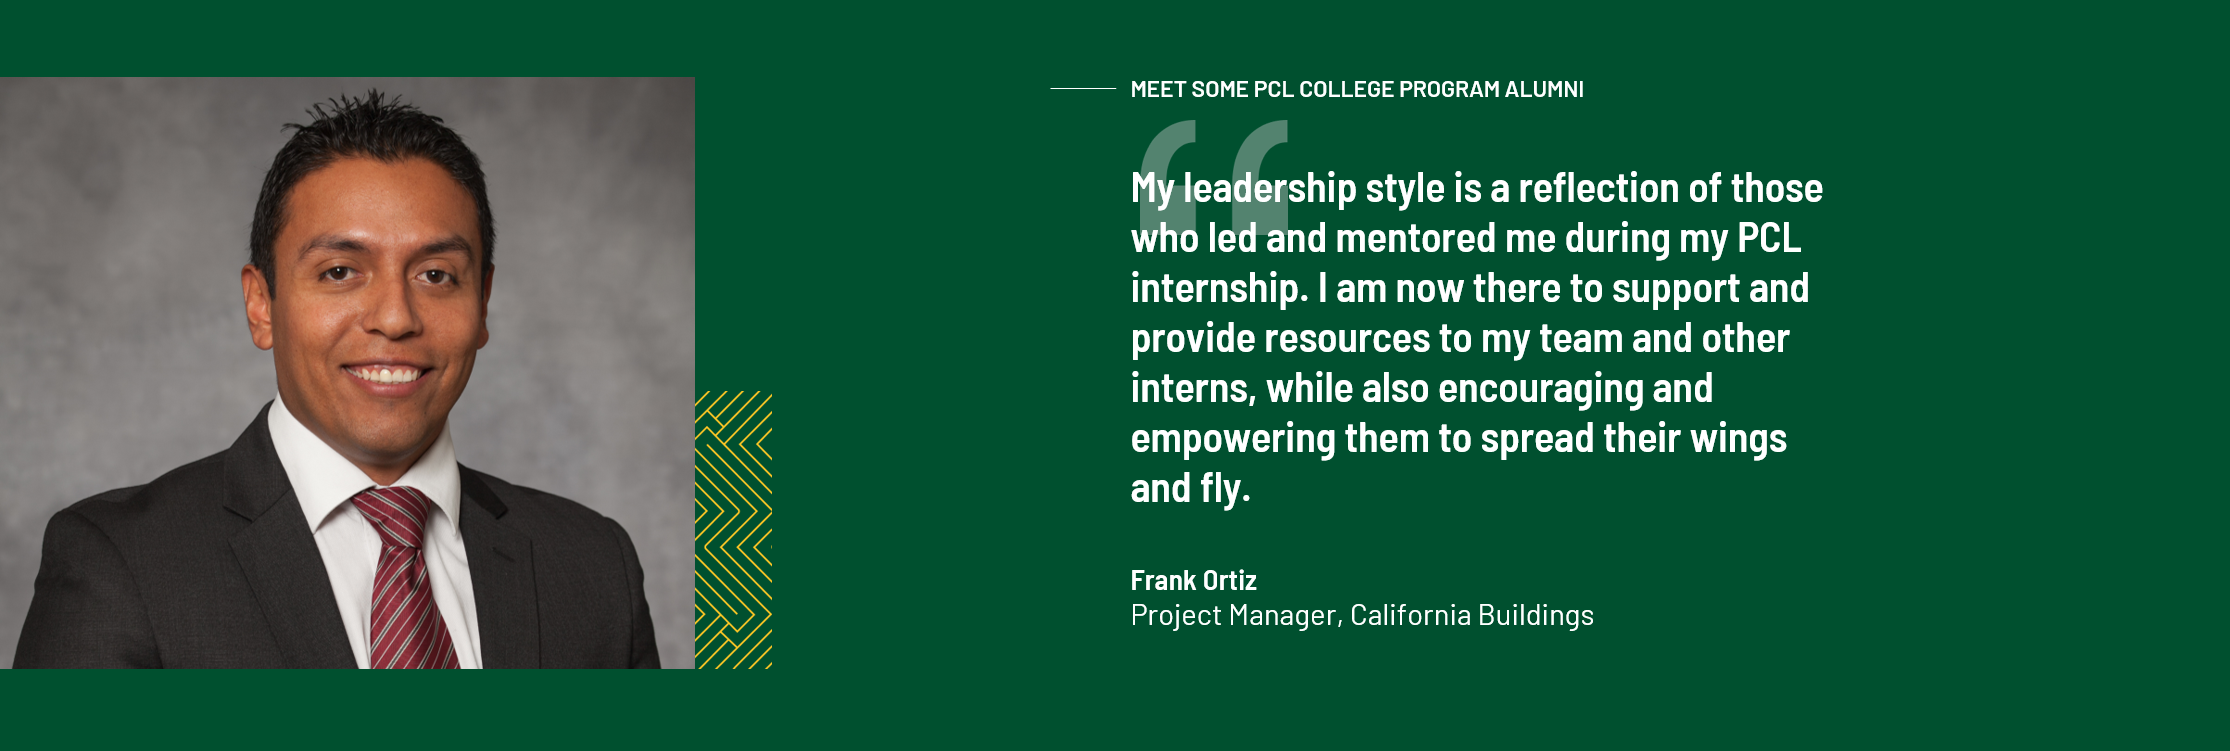 "Meet some PCL College Program Alumni. ""My leadership style is a reflection of those who led and mentored me during my PCL internship. I am now there to support and provide resources to my team and other interns, while also encouraging and empowering them to spread their wings and fly"" Frank Ortiz, Project Manager, California Buildings"